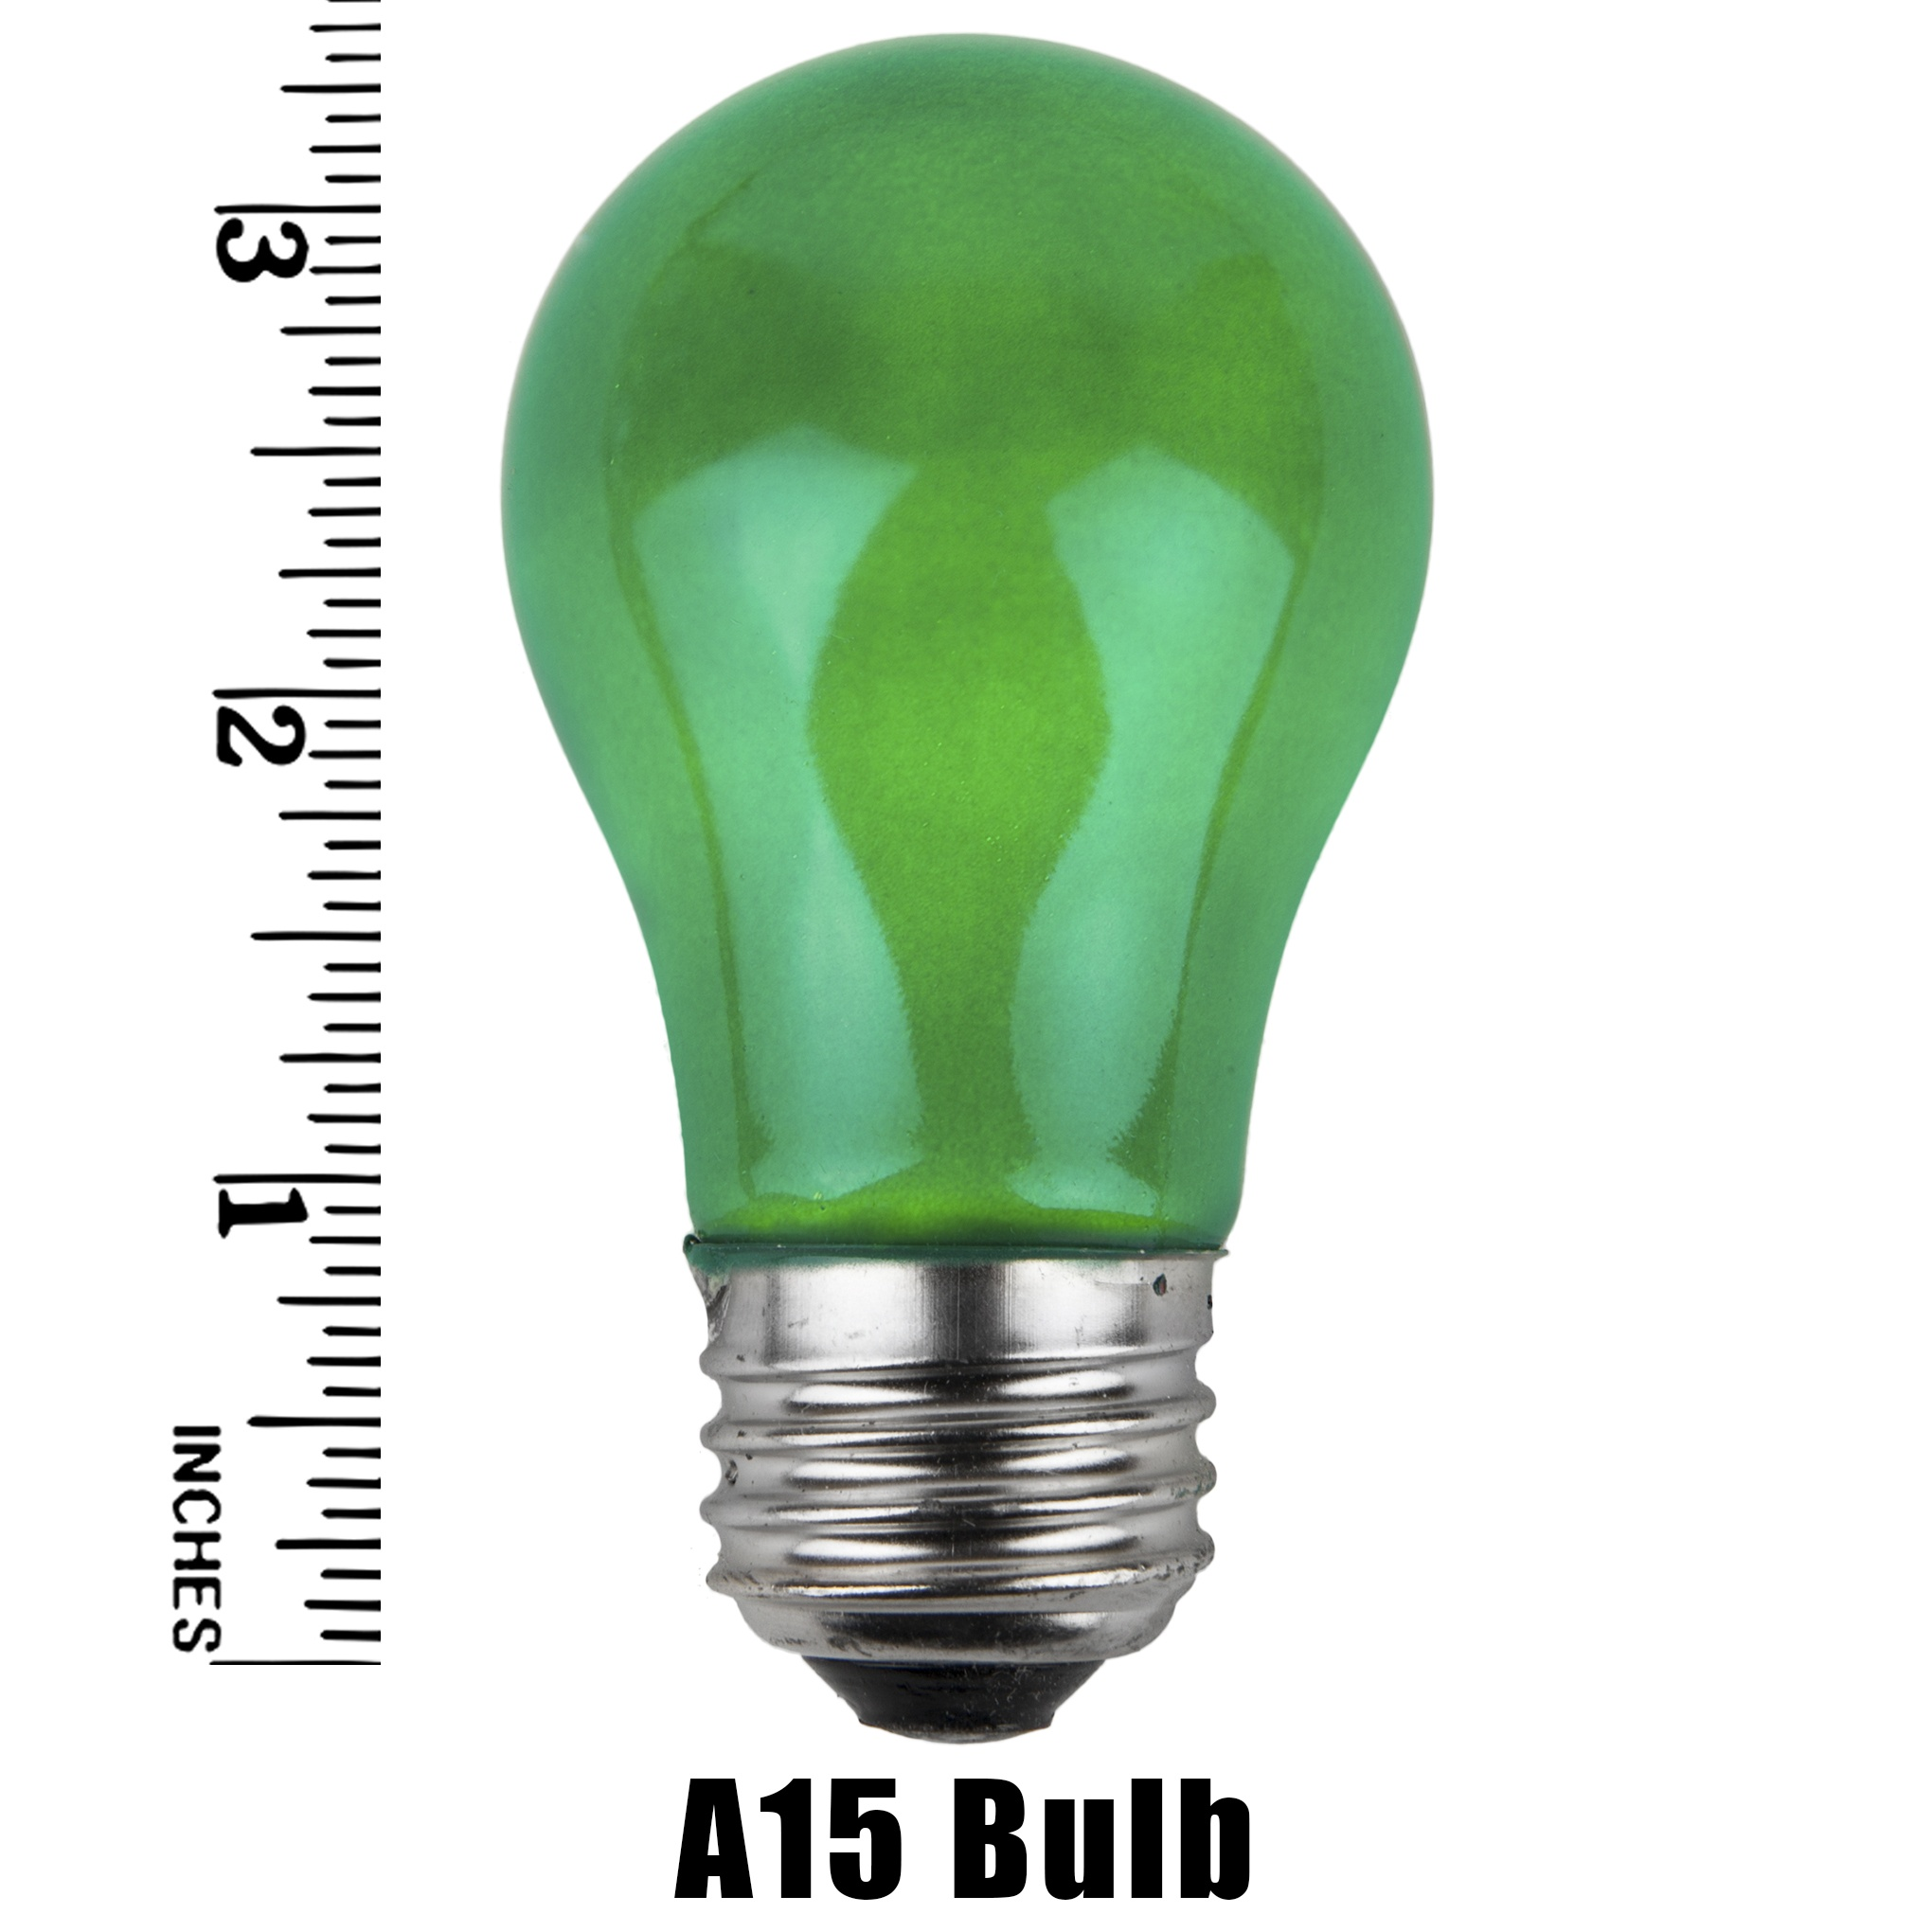 A15 Green Opaque Incandescent Bulb Measurement